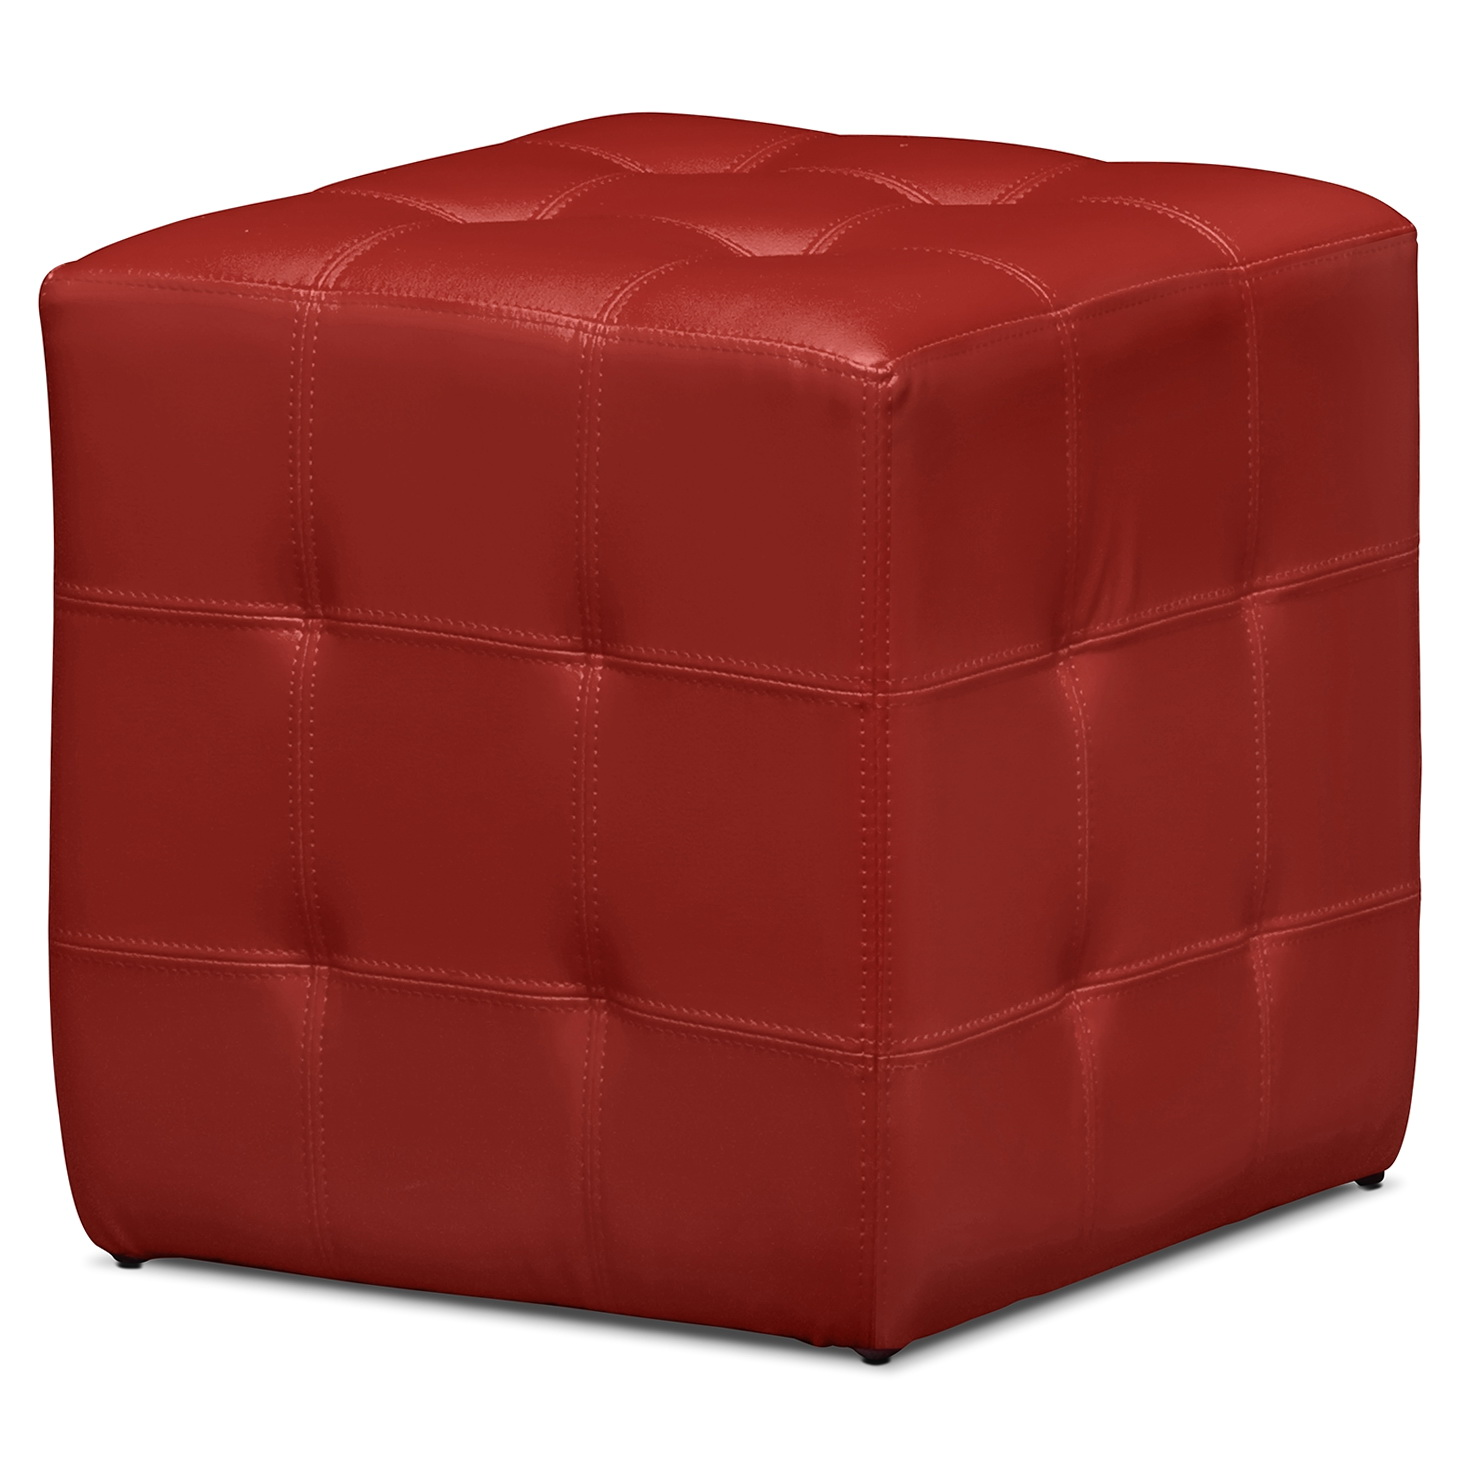 Red Leather Ottoman Cube Home Design Ideas